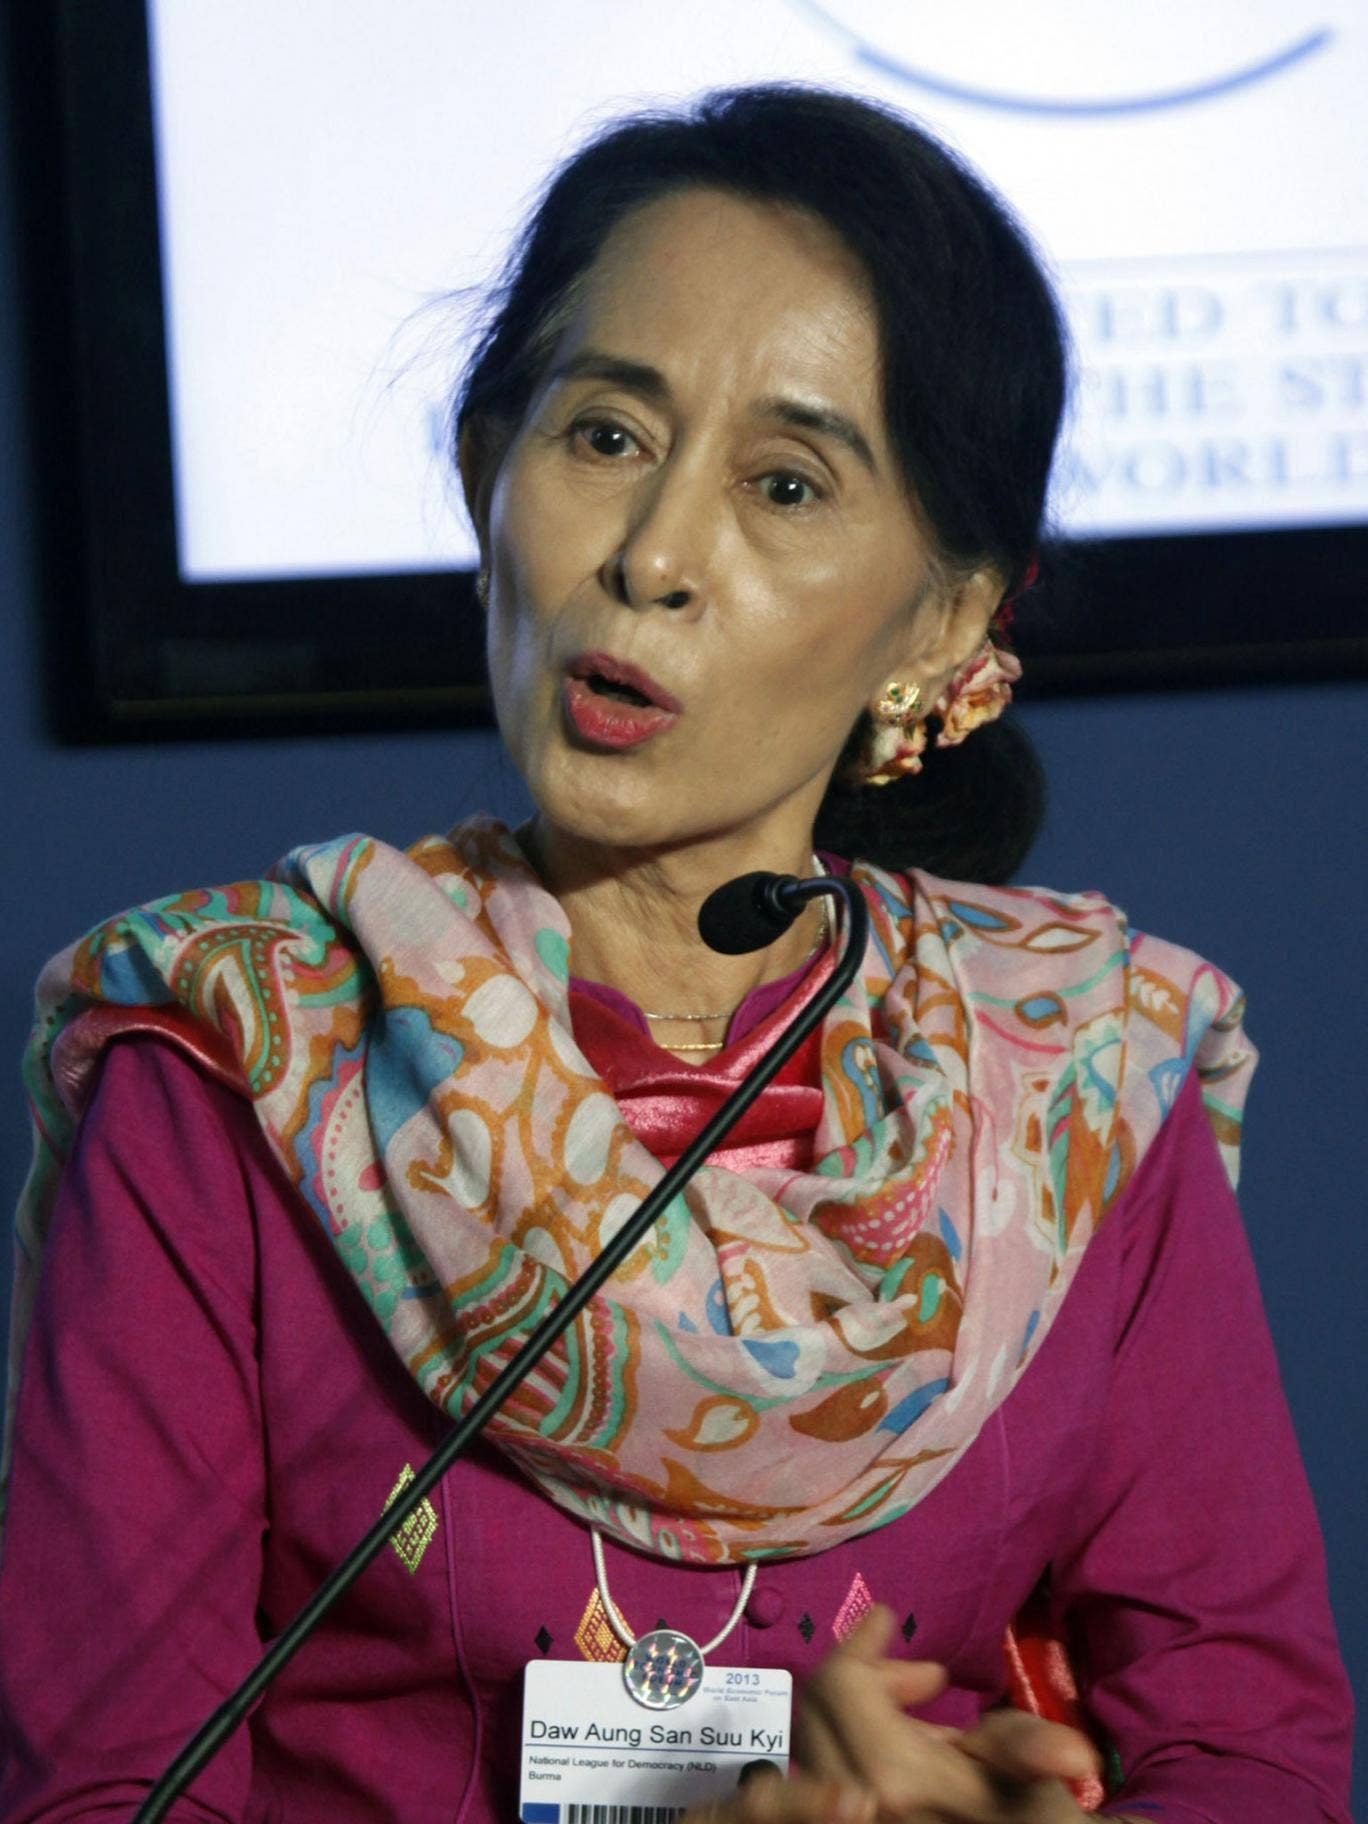 Myanmar's pro-democracy leader Aung San Suu Kyi talks to reporters during a news conference at the World Economic Forum